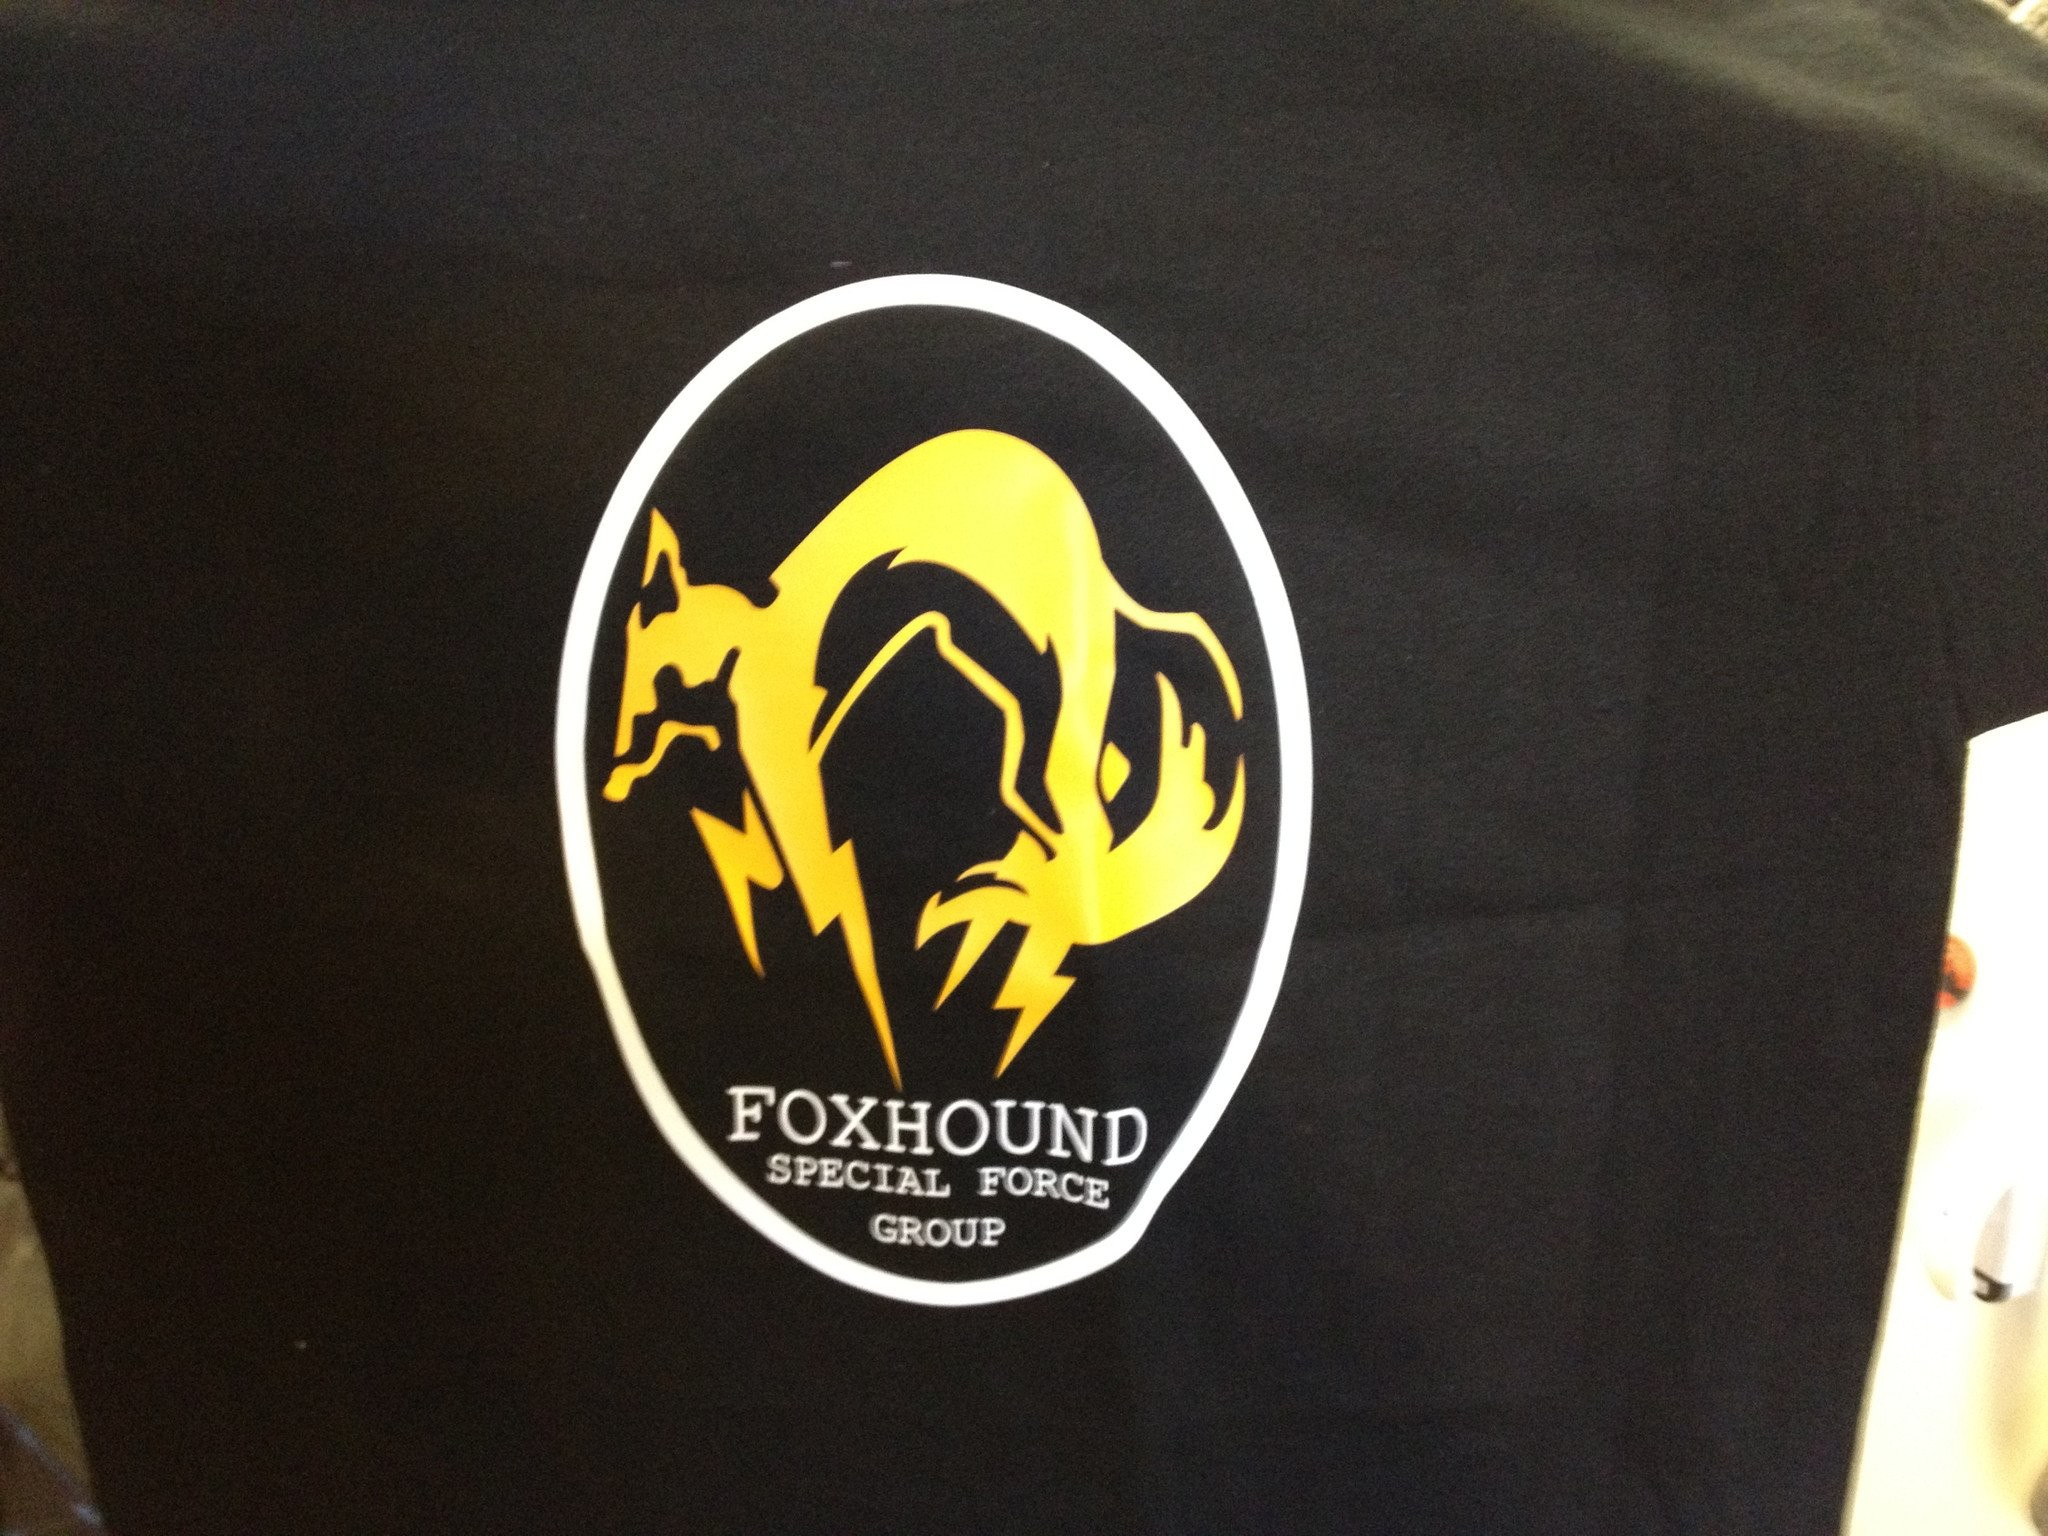 Metal Gear Solid Fox Hound Special Force Group Tshirt: Black With Yellow  and White Print